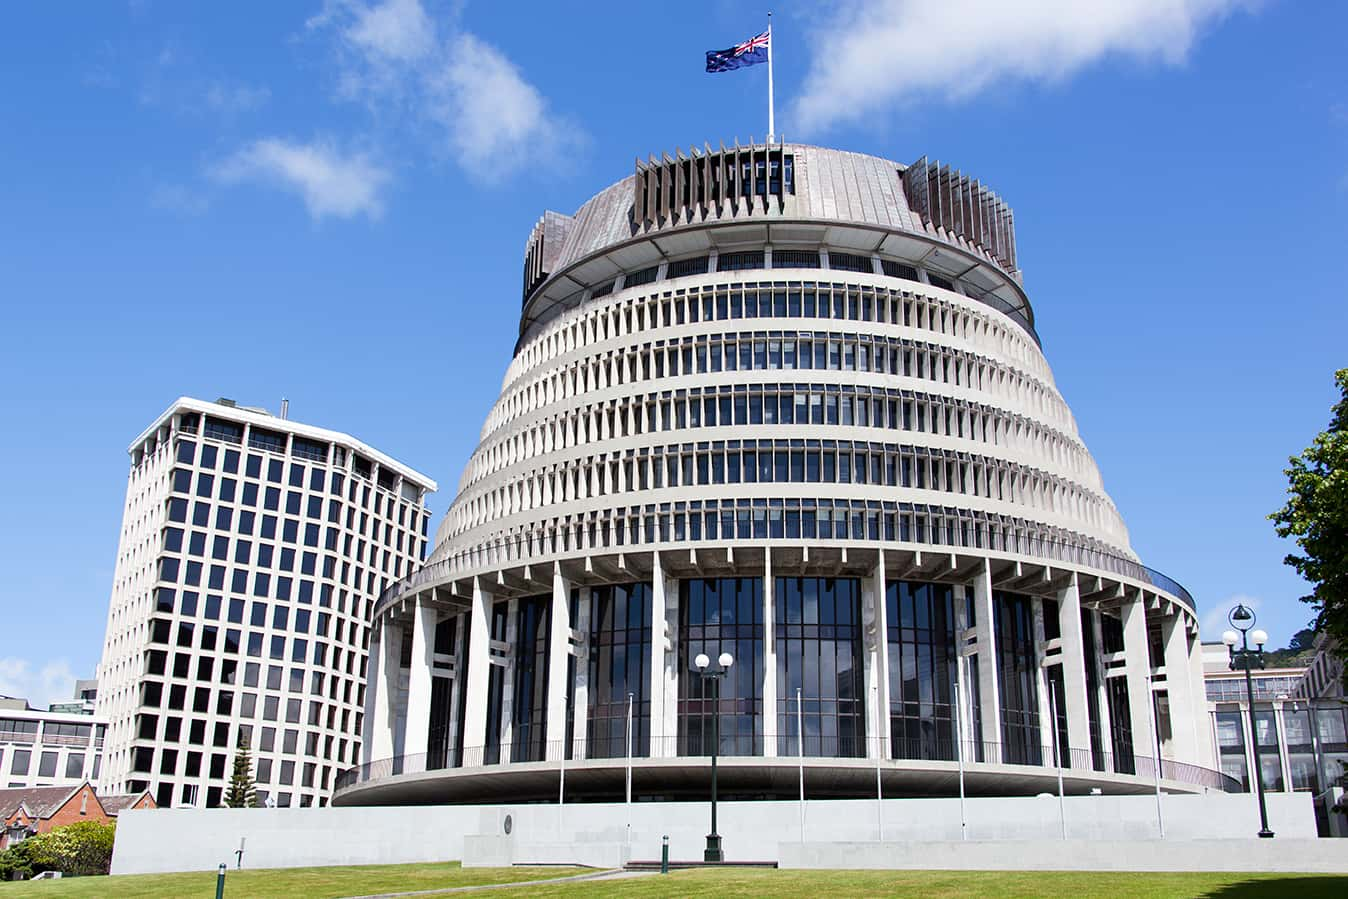 New Zealand medical cannabis, New Zealand legalizes medical cannabis for domestic, export markets